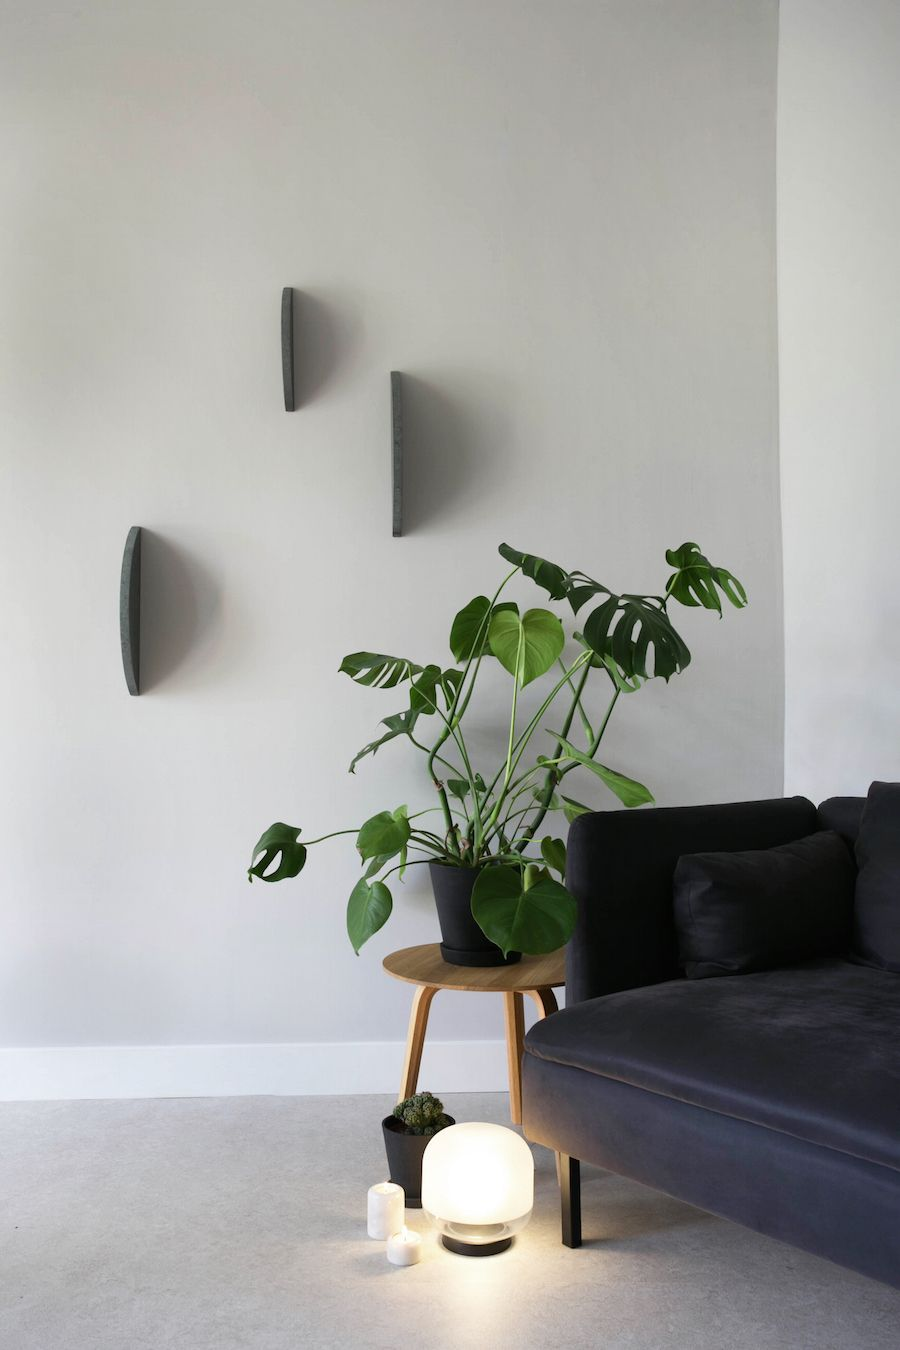 Decorative Objects Living Room: Segments Wall Objects (April And May)